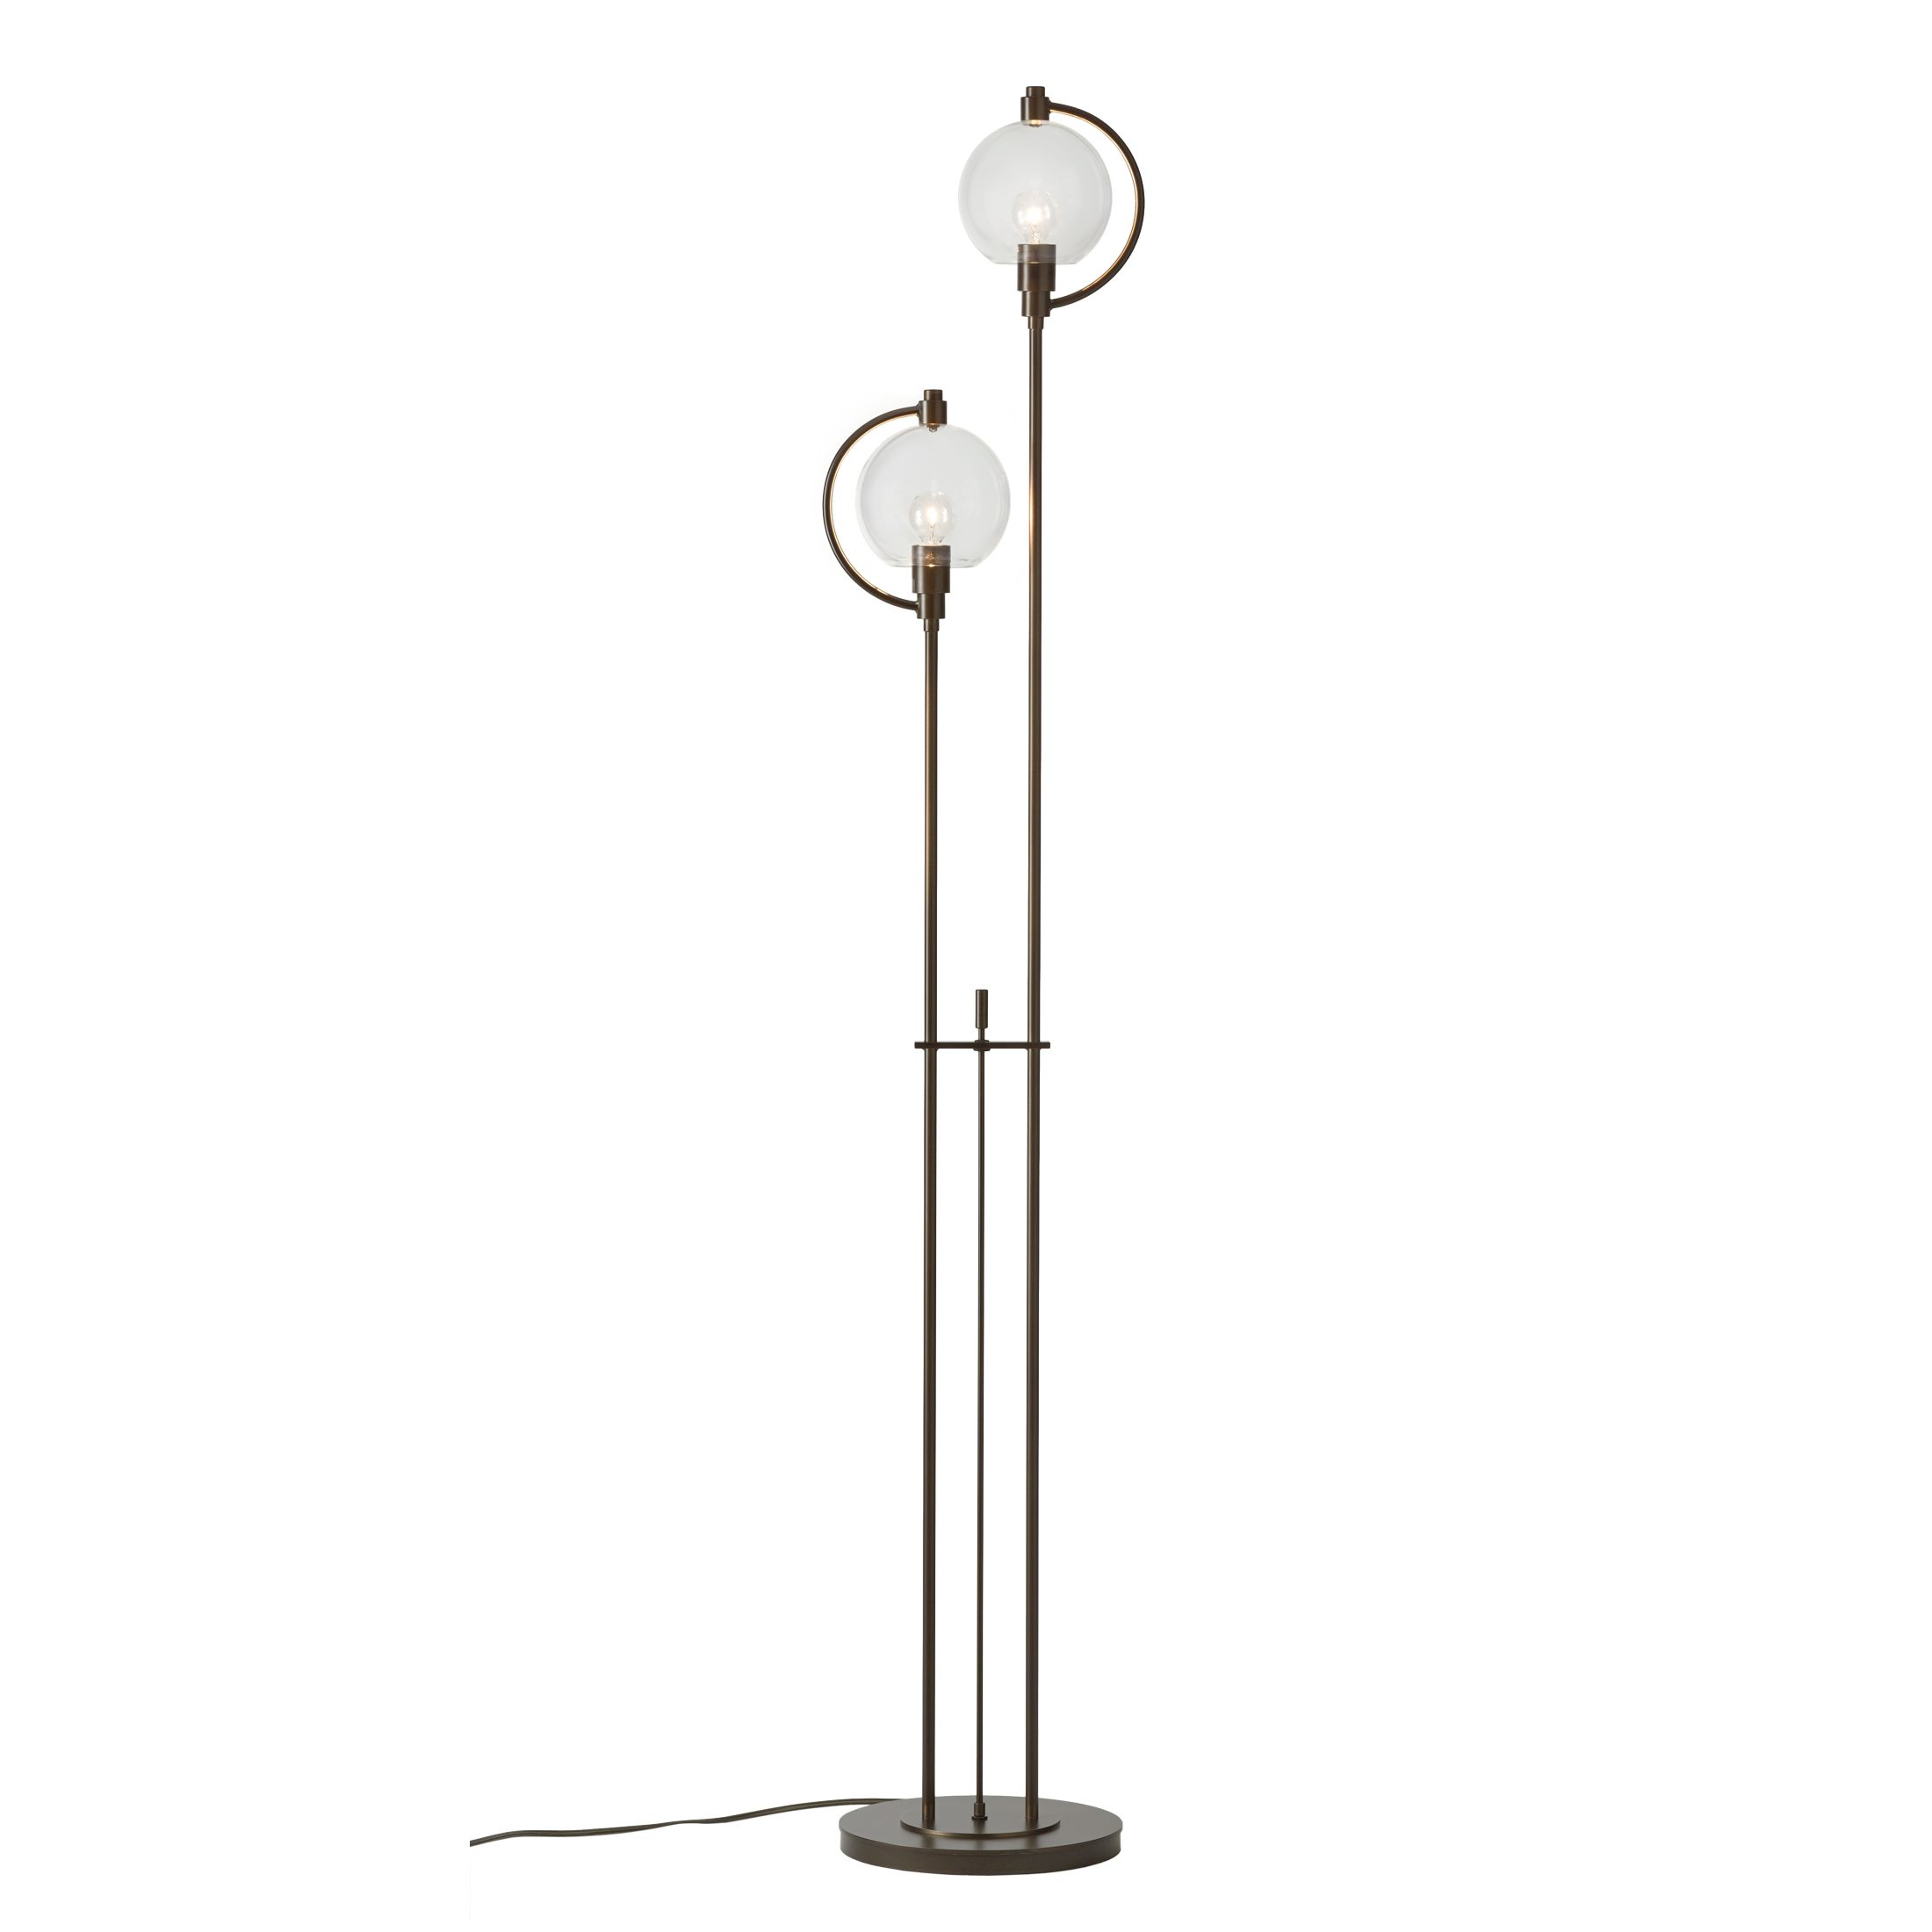 Thumbnail for Pluto Floor Lamp